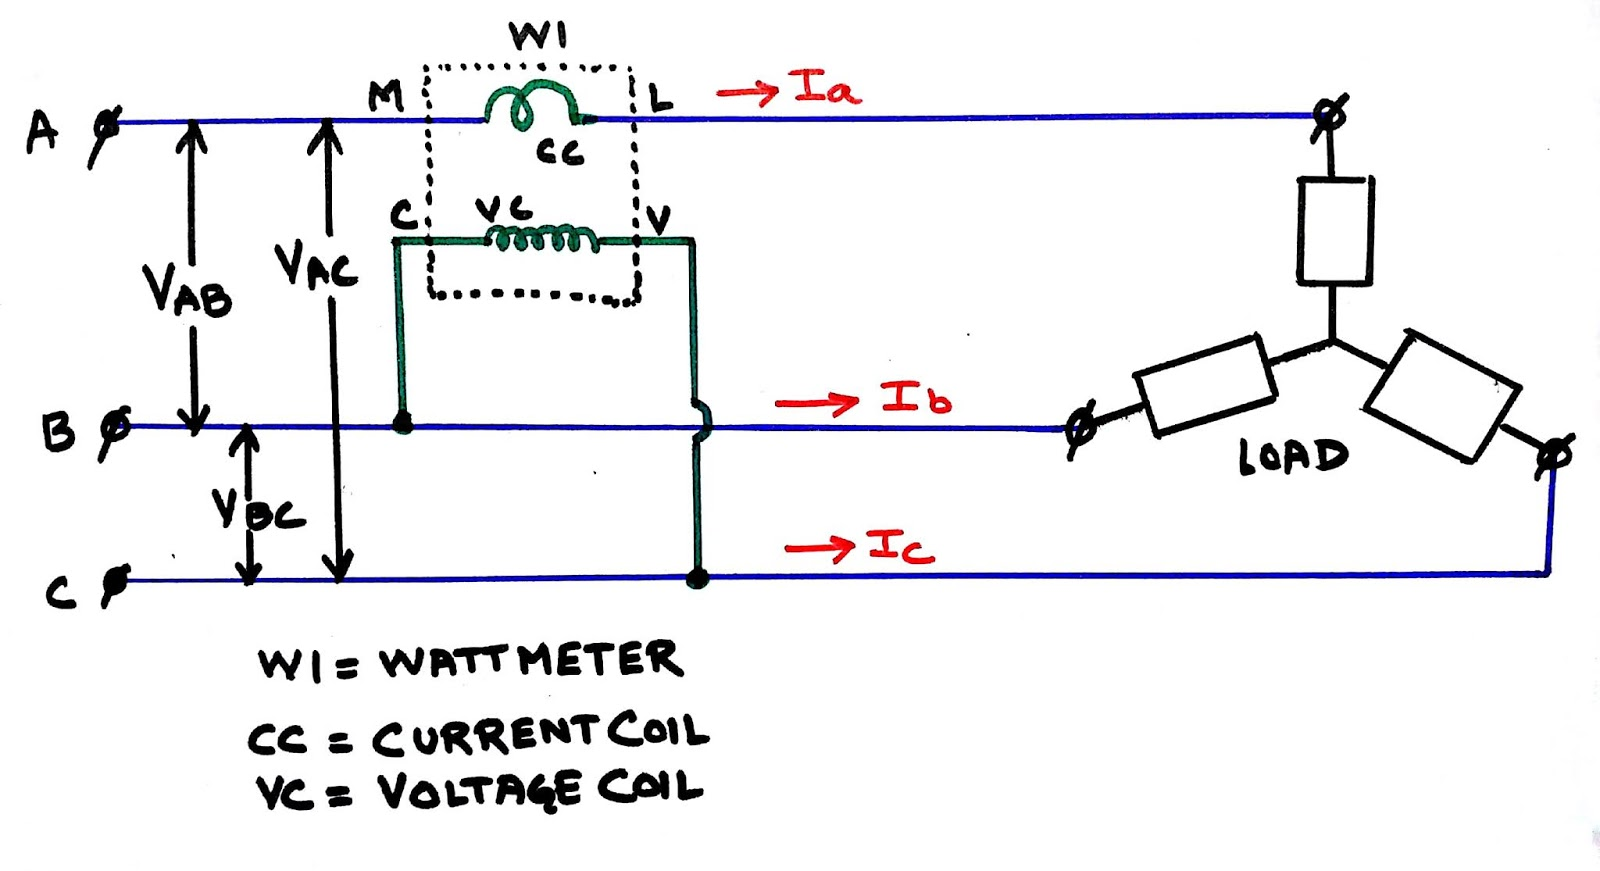 messurement of reactive power by wattmeter fig 1 circuit diagram  [ 1600 x 871 Pixel ]